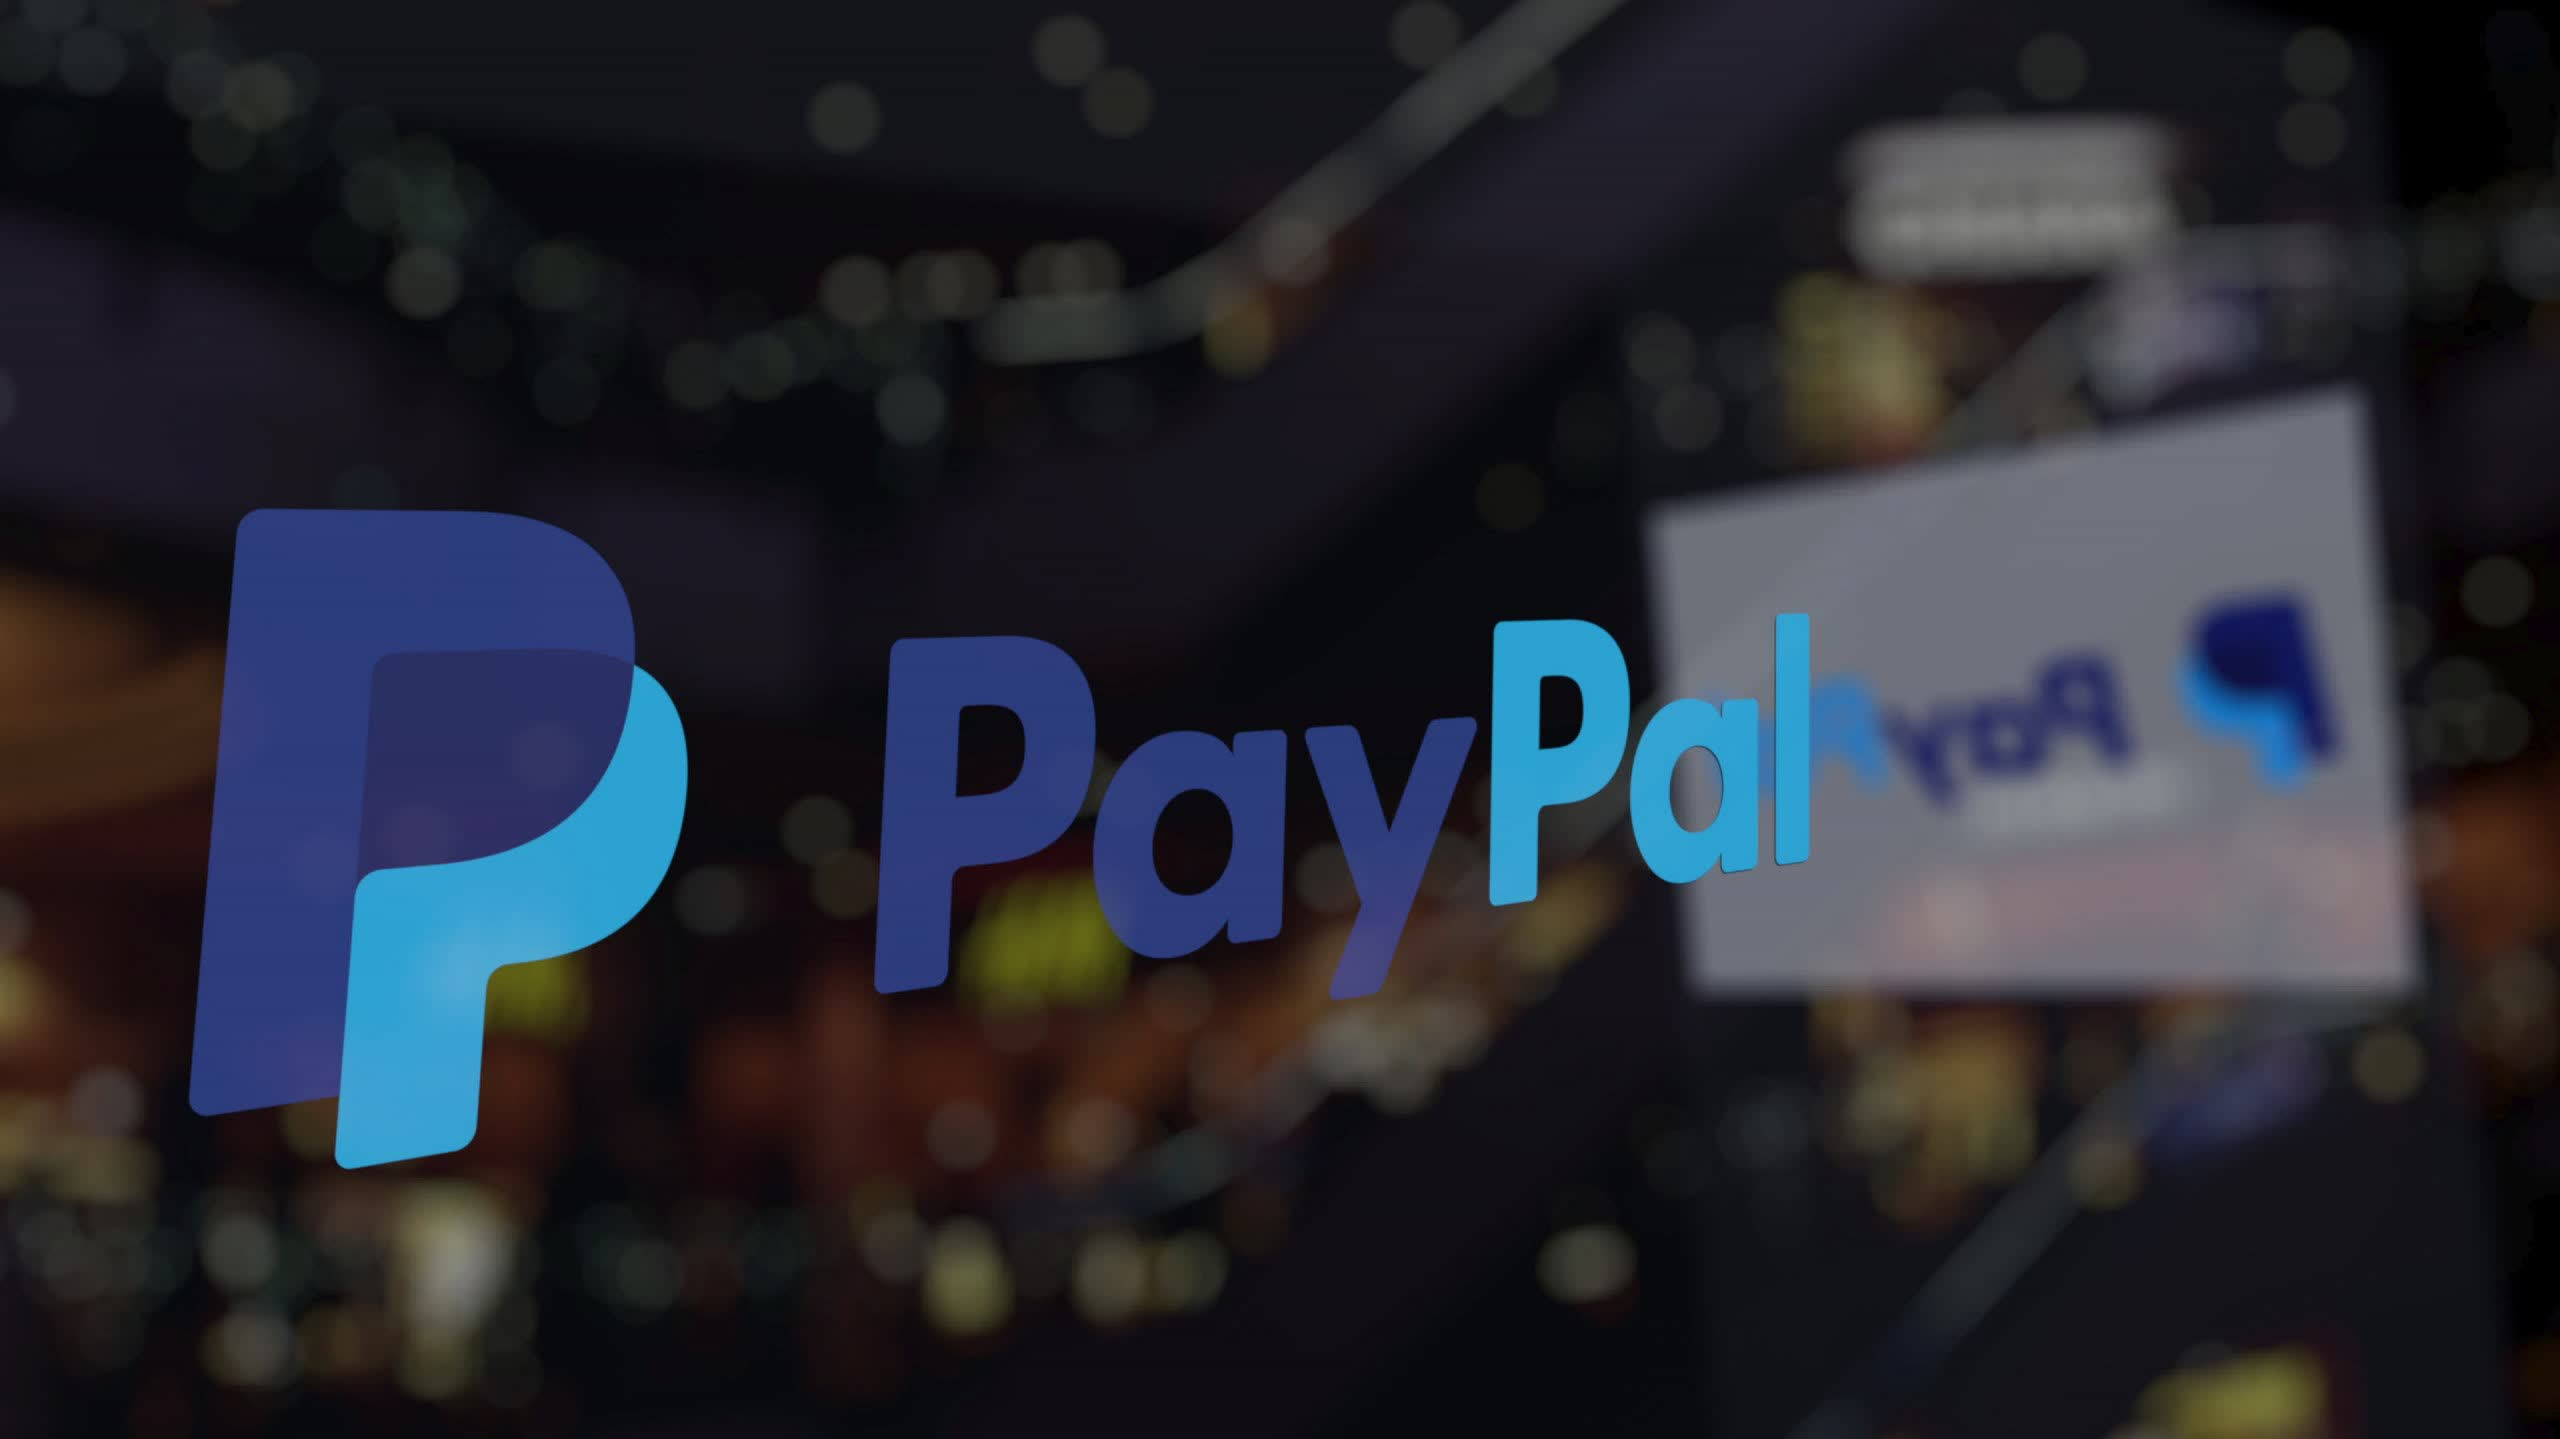 PayPal rolls out its cryptocurrency service to the UK